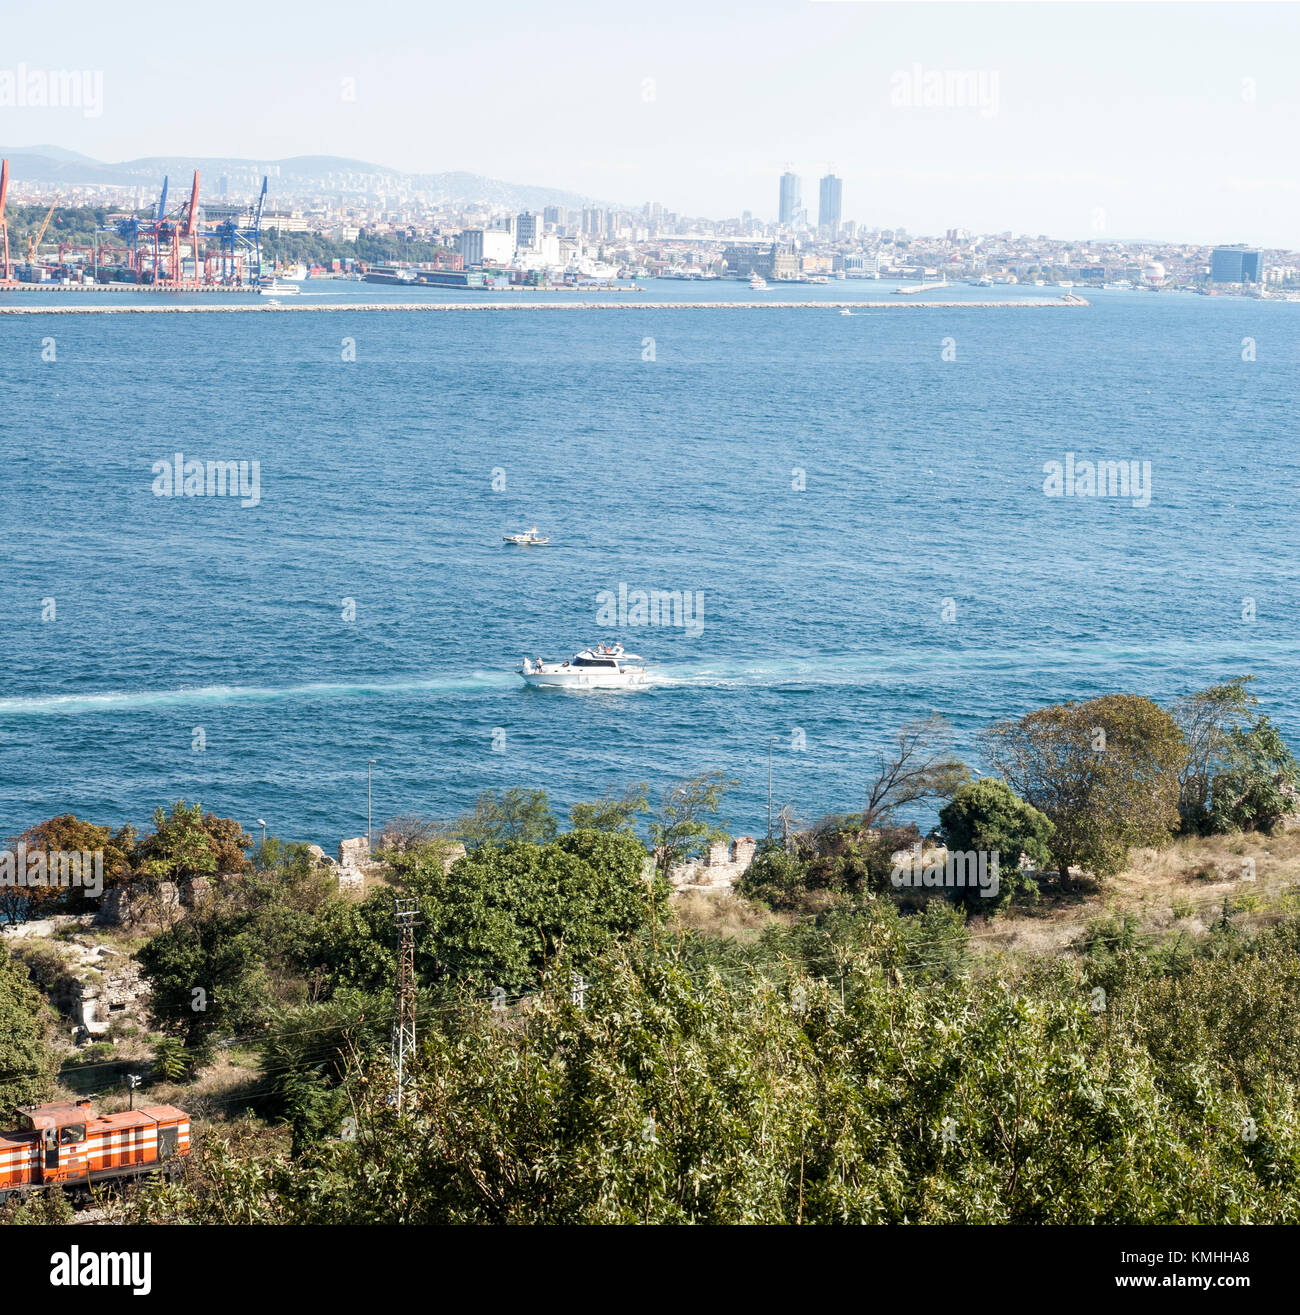 The Bosphorus. The strait that connects the Black Sea to the Sea of Marmara and marks the southern boundary between - Stock Image